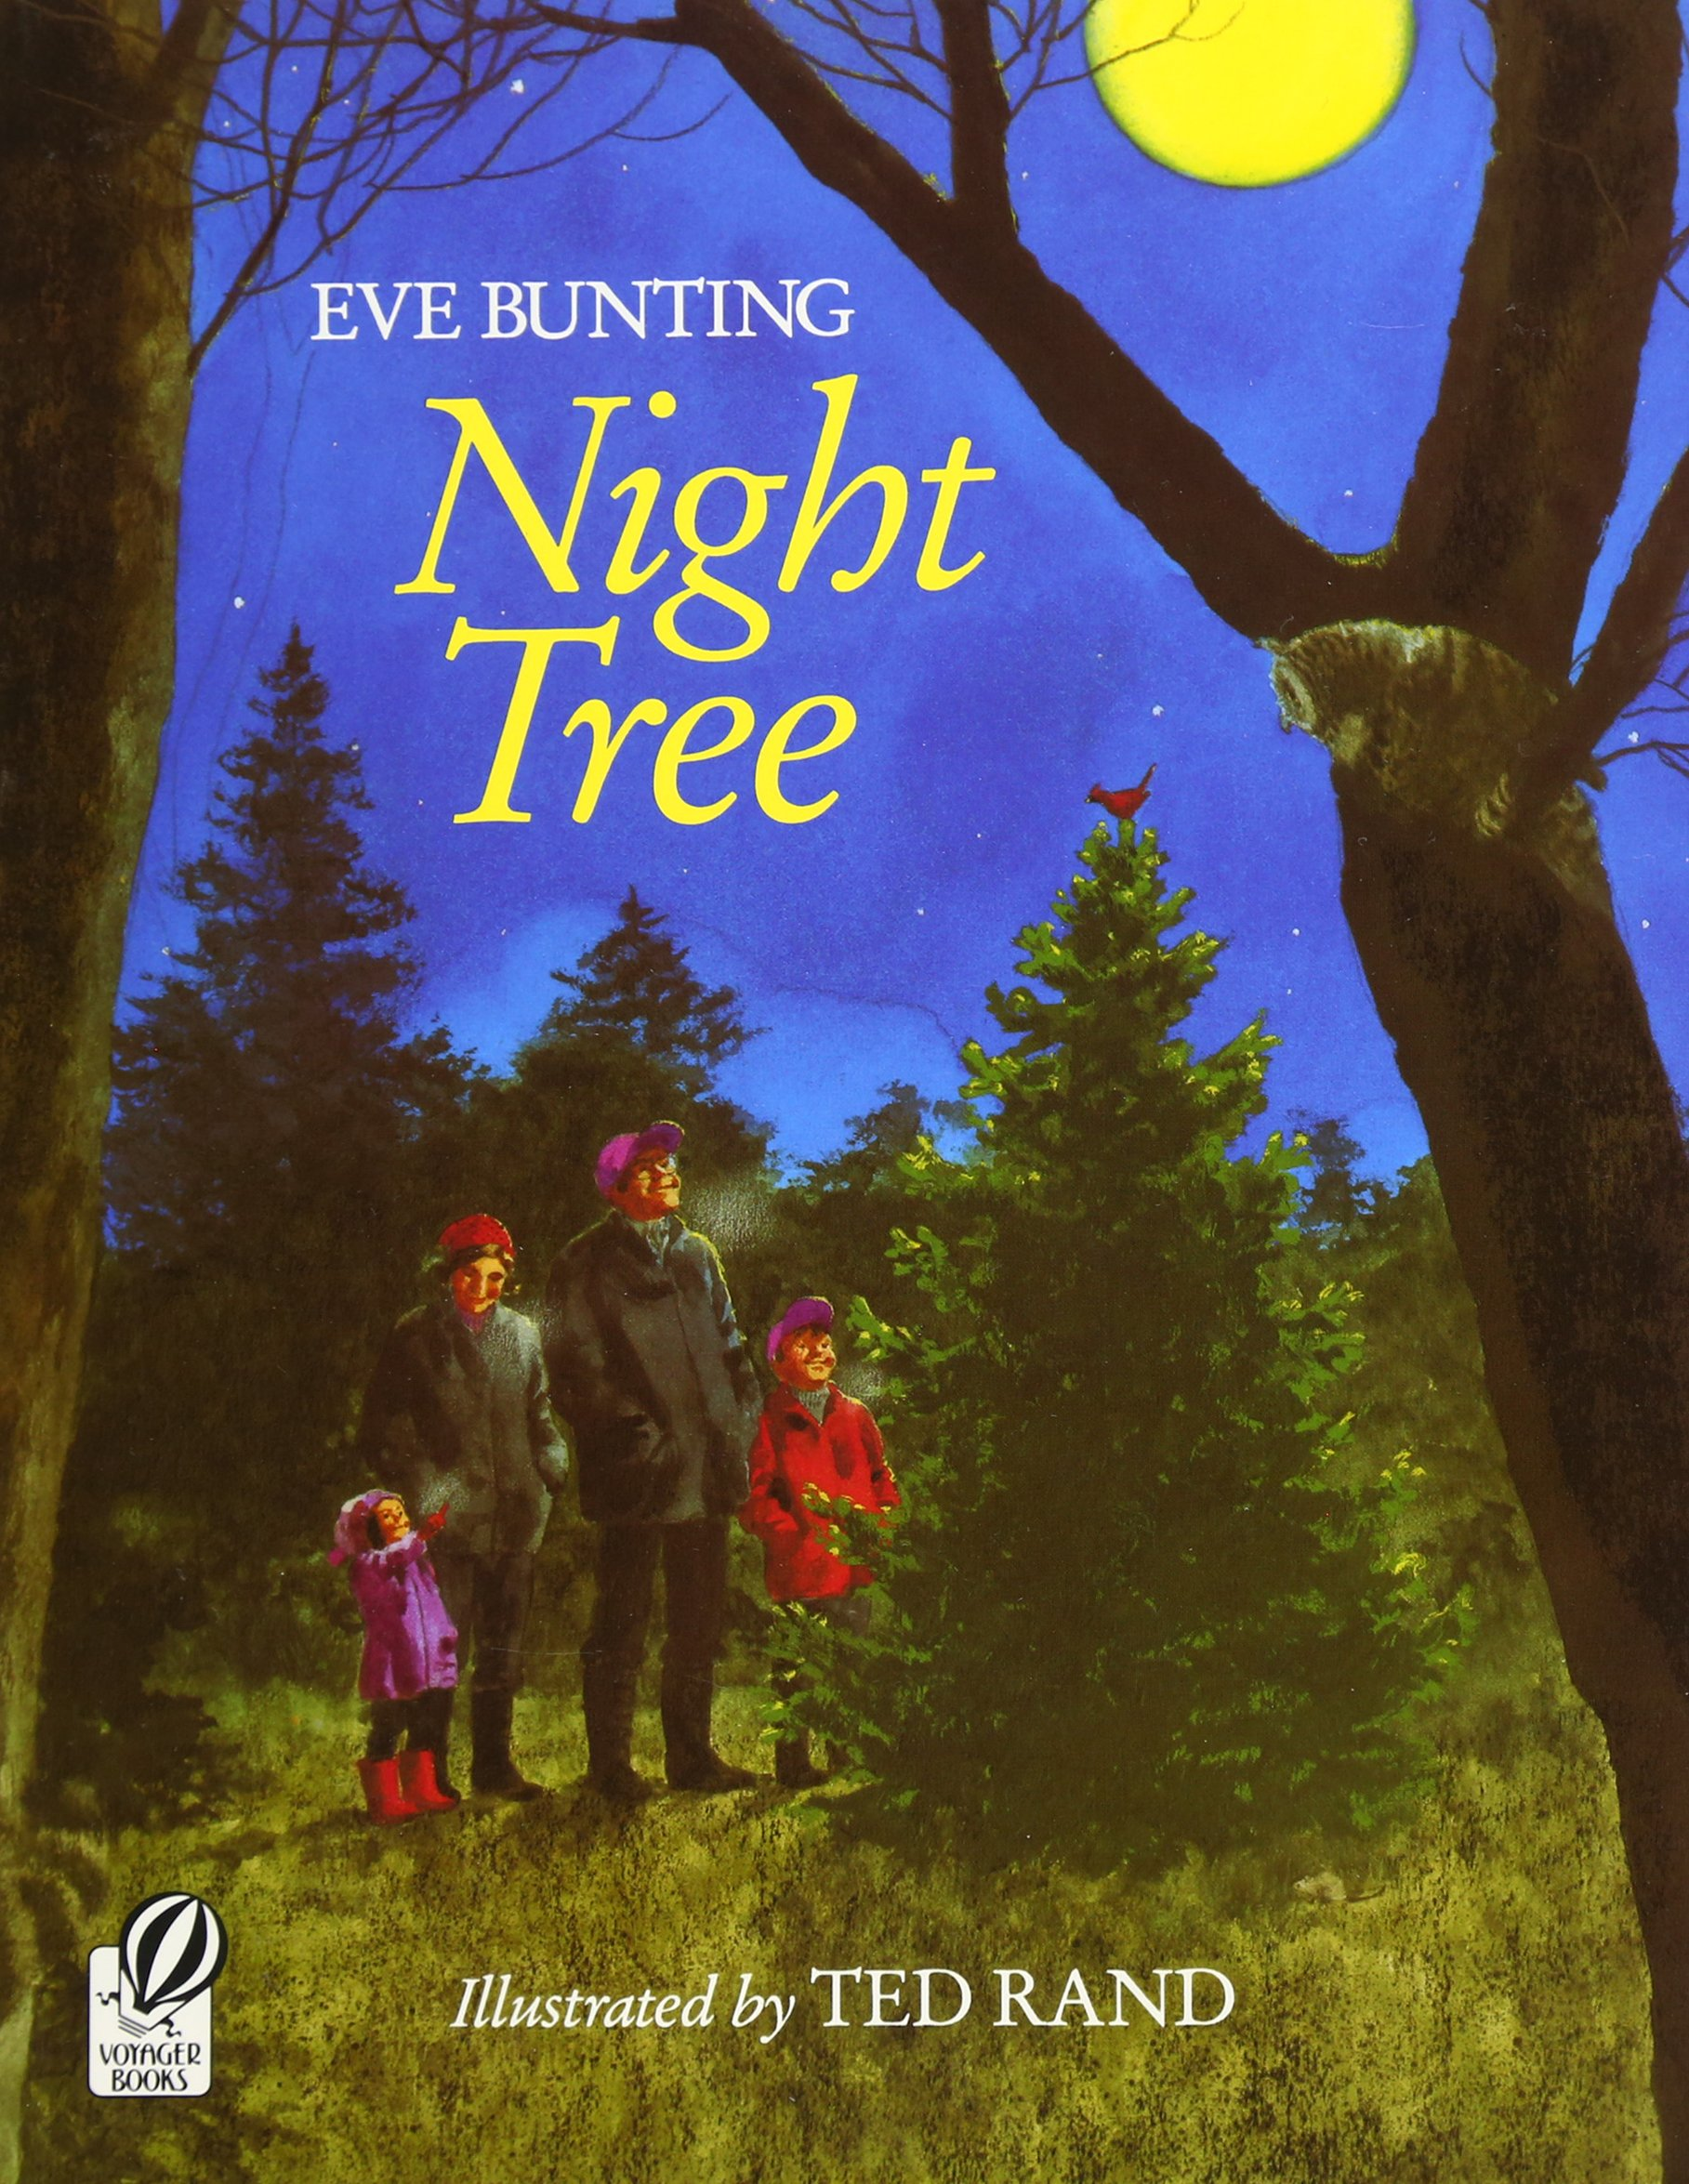 Night Tree: Bunting, Eve, Rand, Ted: 9780152001216: Amazon.com: Books